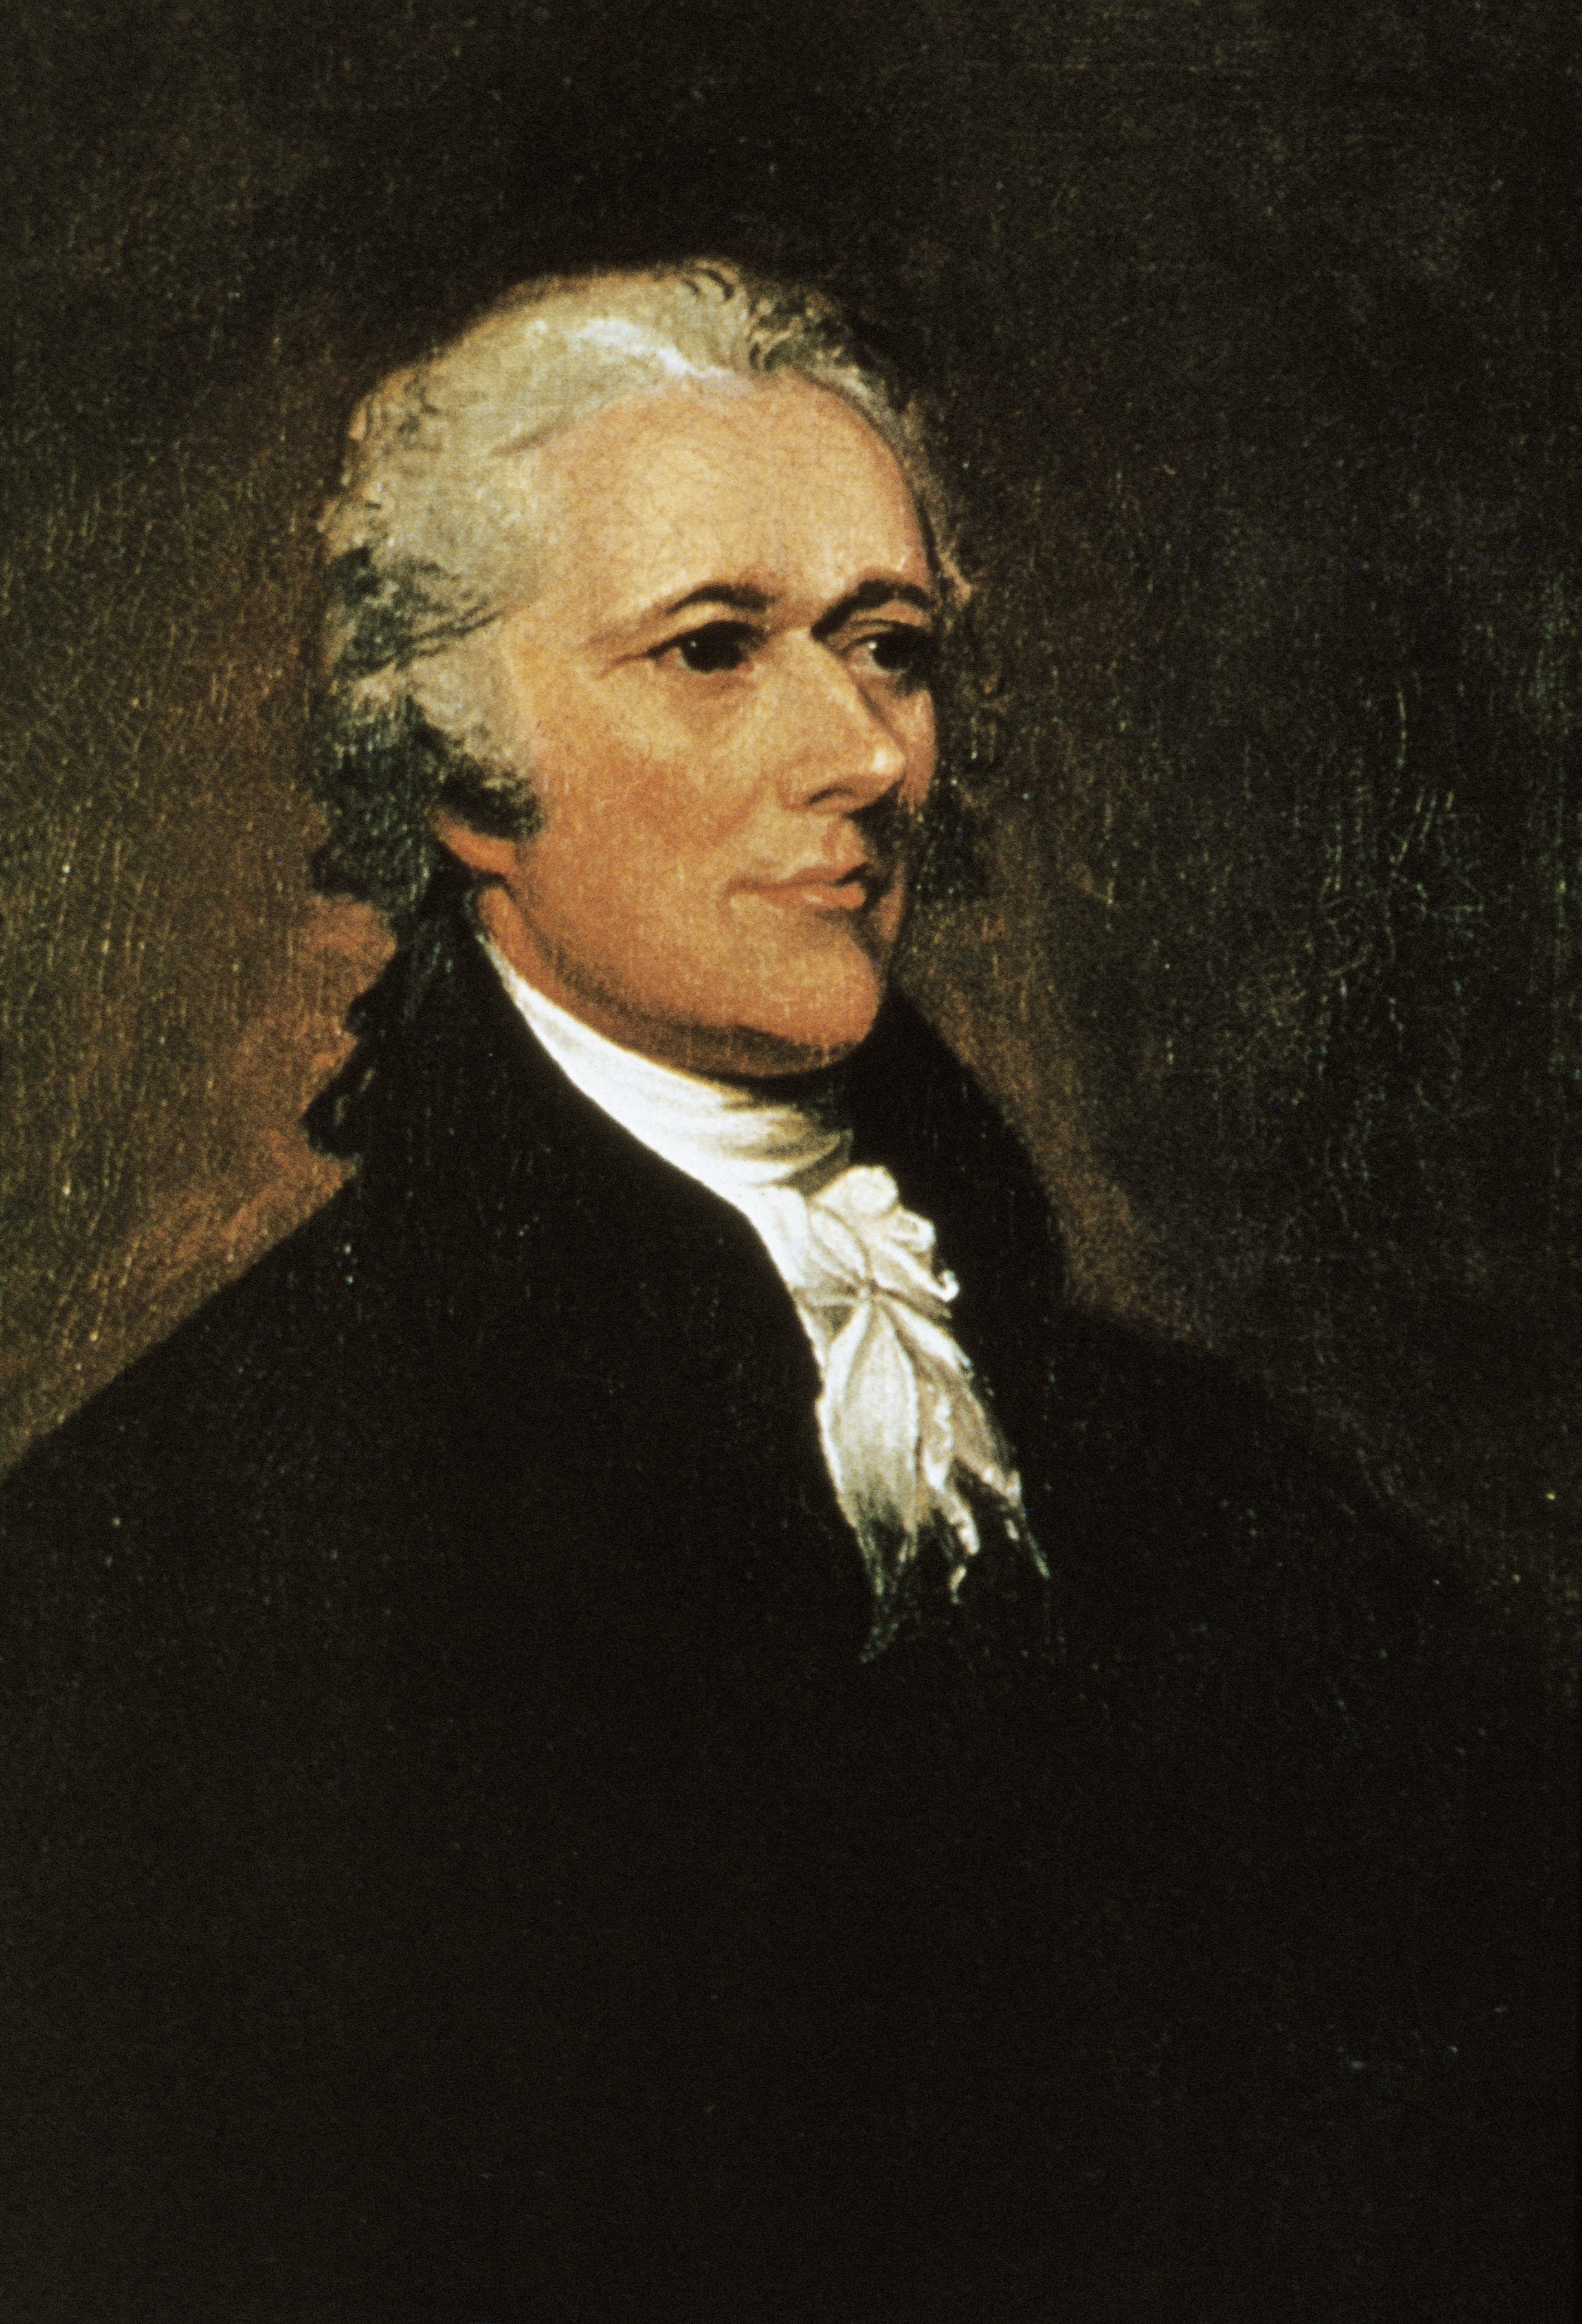 Portrait of Alexander Hamilton (1757-1804), American politician. Painting by John Trumbull (1756-1843).